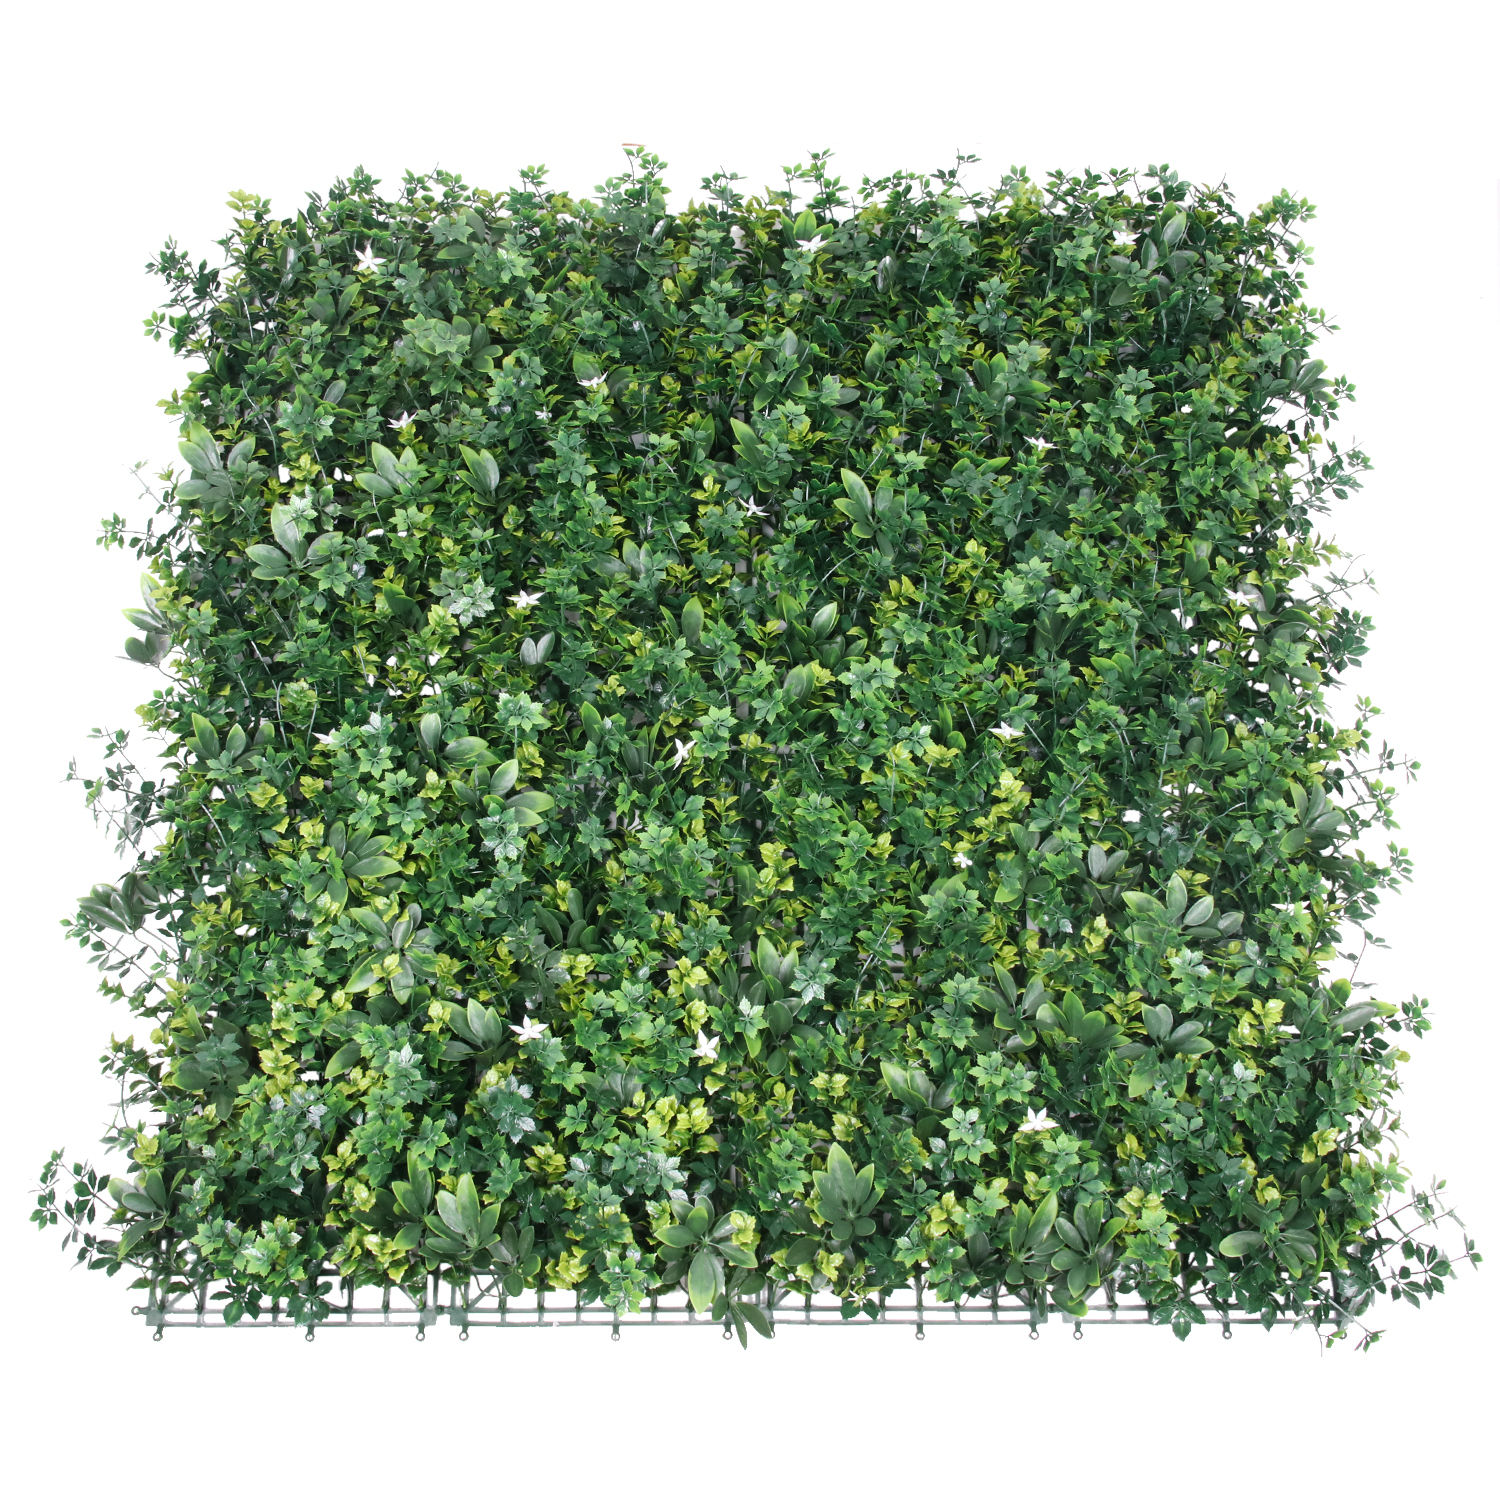 Artificial Grass Wall Wholesale Foliage Hanging Boxwood Hedge Artificial Green Wall Faux Plant Grass Wall For Garden Decoration